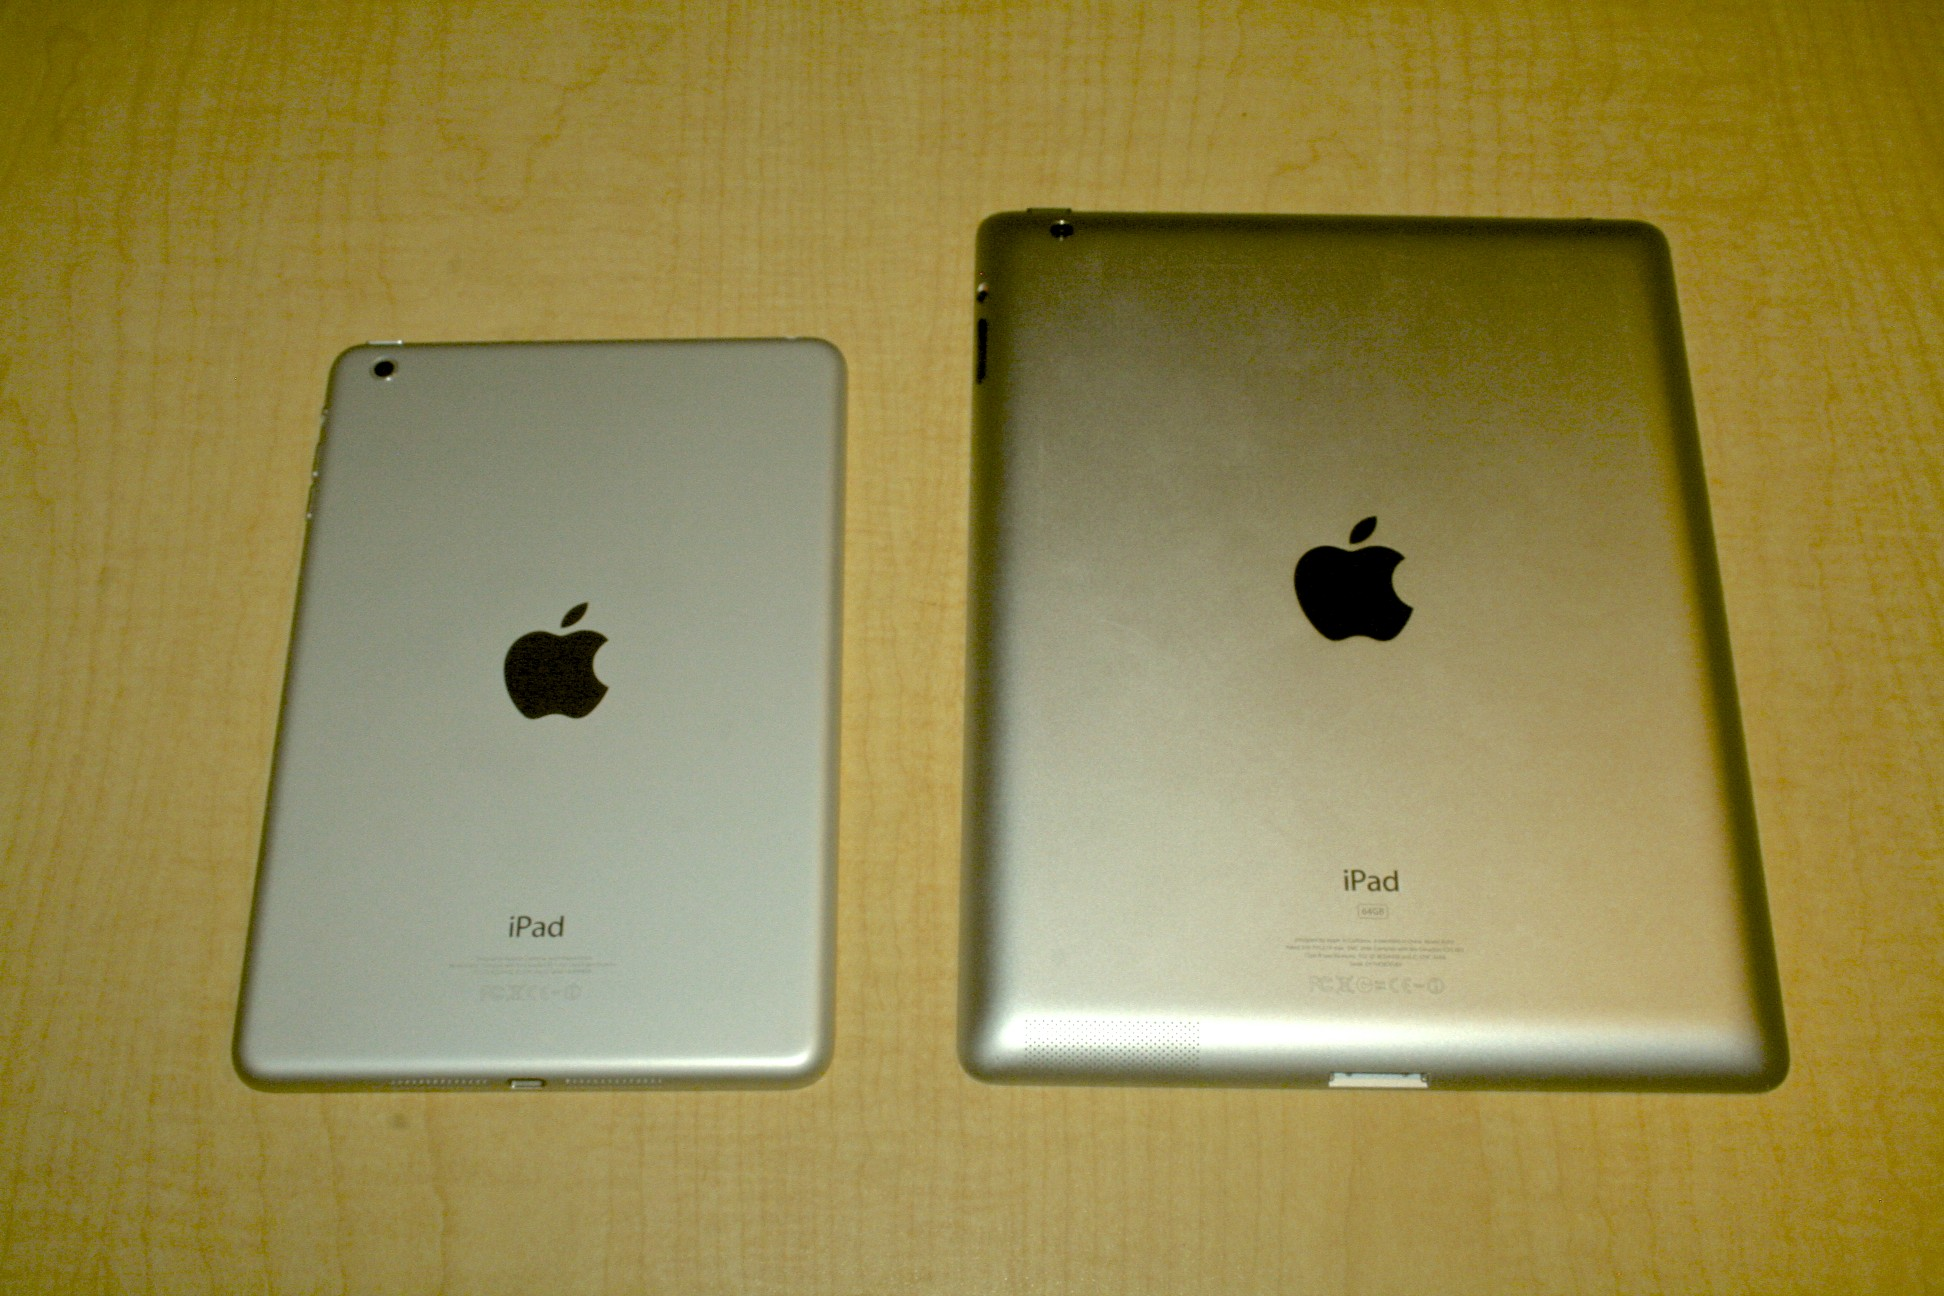 iPad Mini, ipad, apple ipad, ipad mini, review, unboxing, ipad mini review